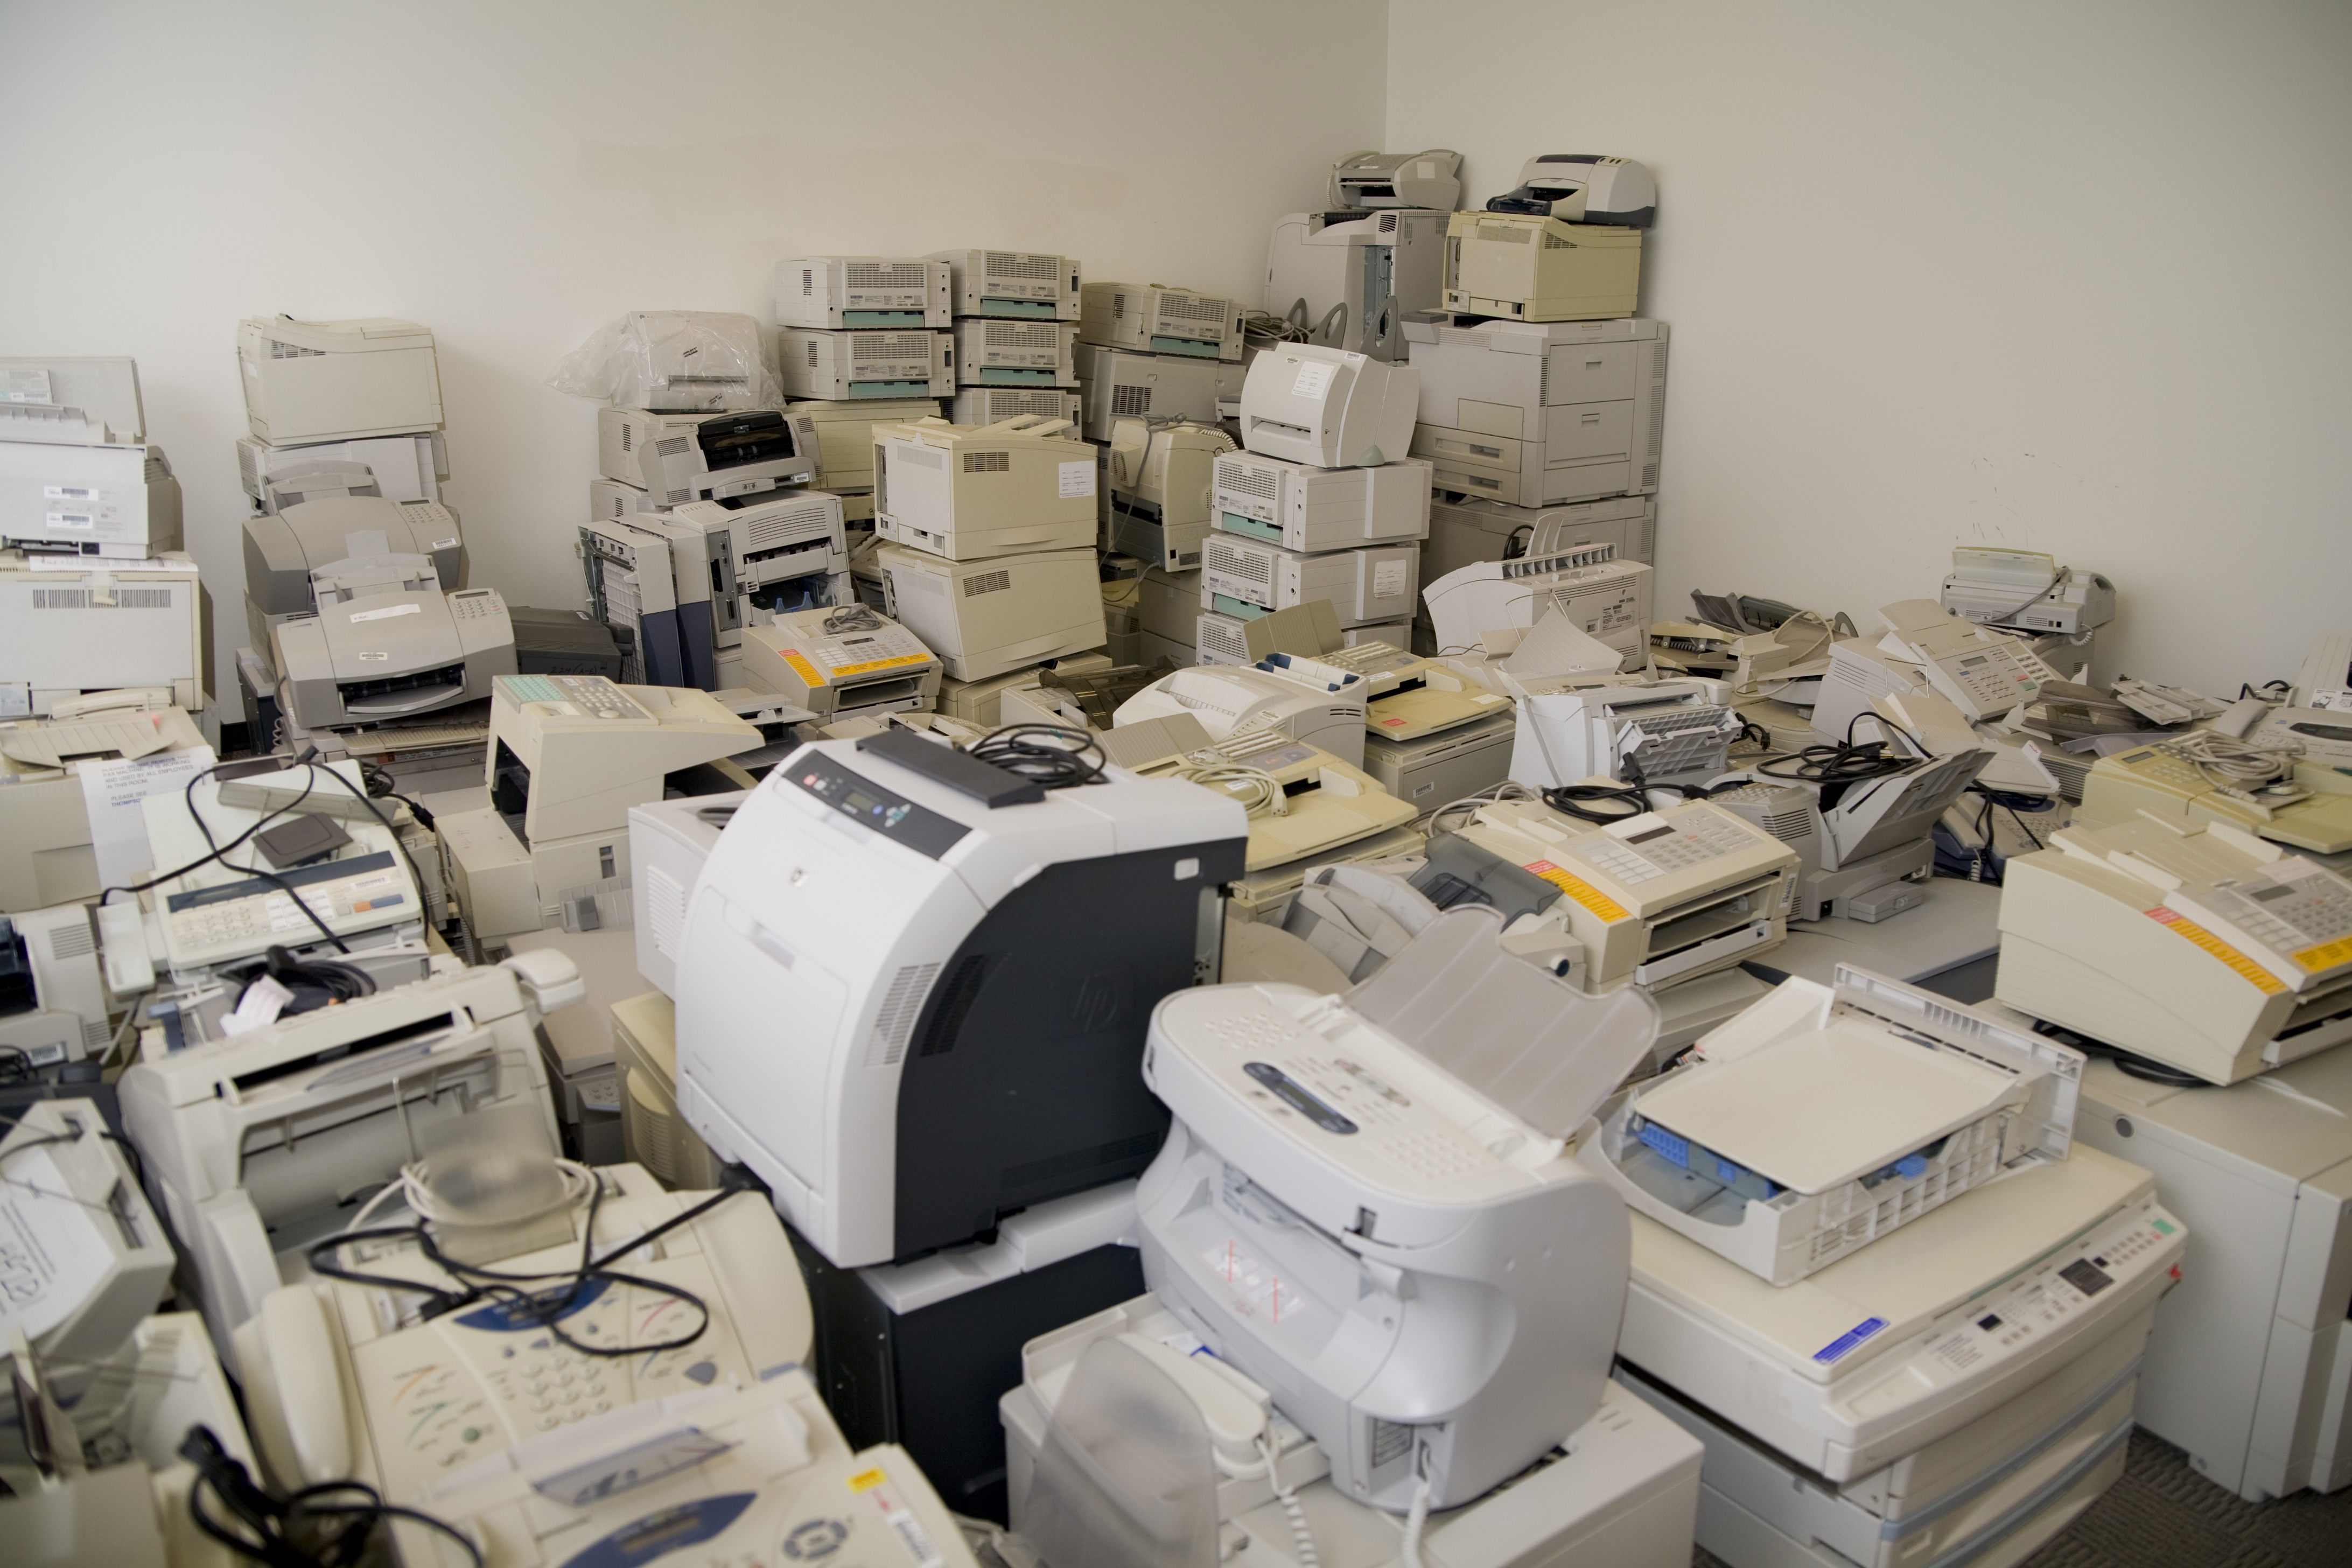 Ted on Tech: Managing those pesky printers | Accounting Today